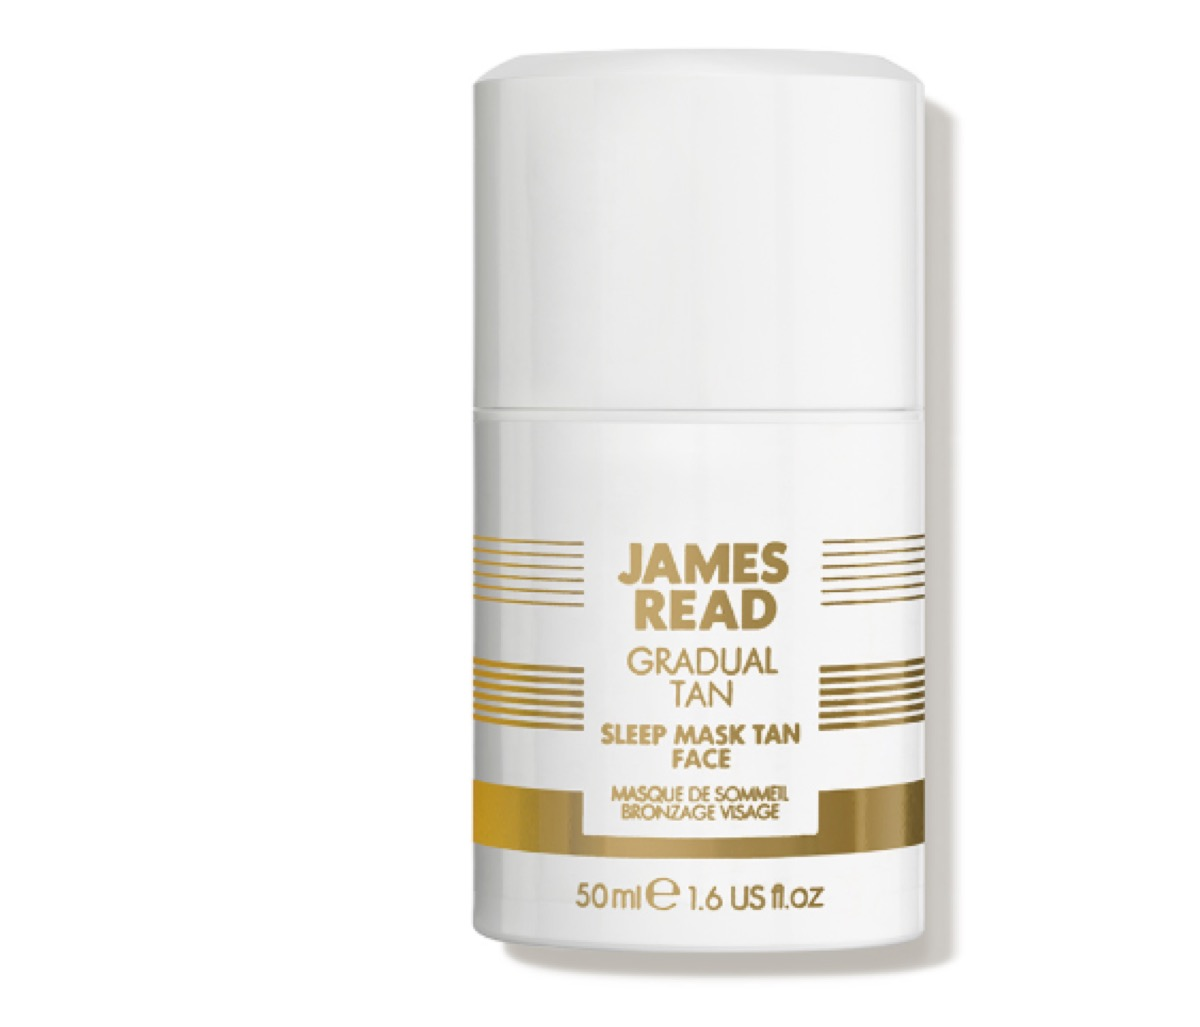 james read overnight tan derm store, summer beauty products